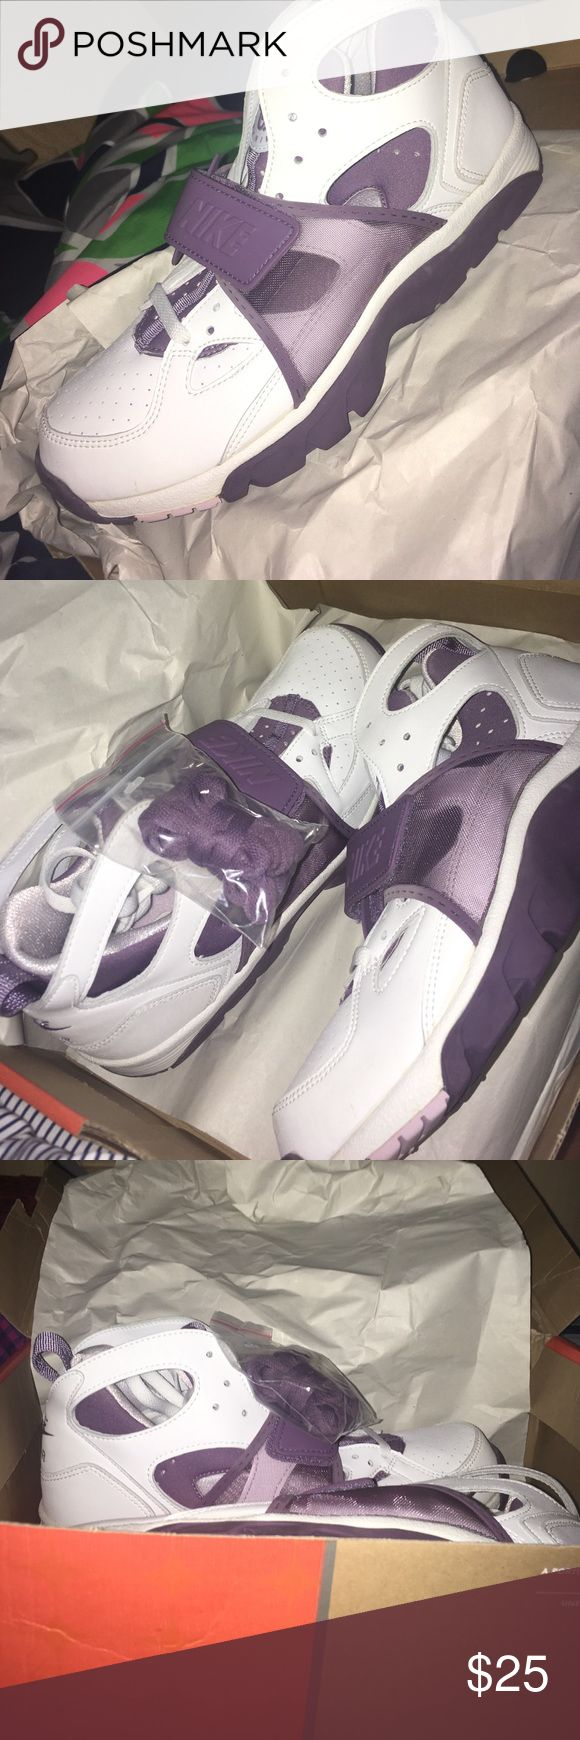 GREAT DEAL Brand New Women's Air Trainer Huaraches BRAND NEW NIKE AIR TRAINER HUARACHES Nike Shoes Sneakers